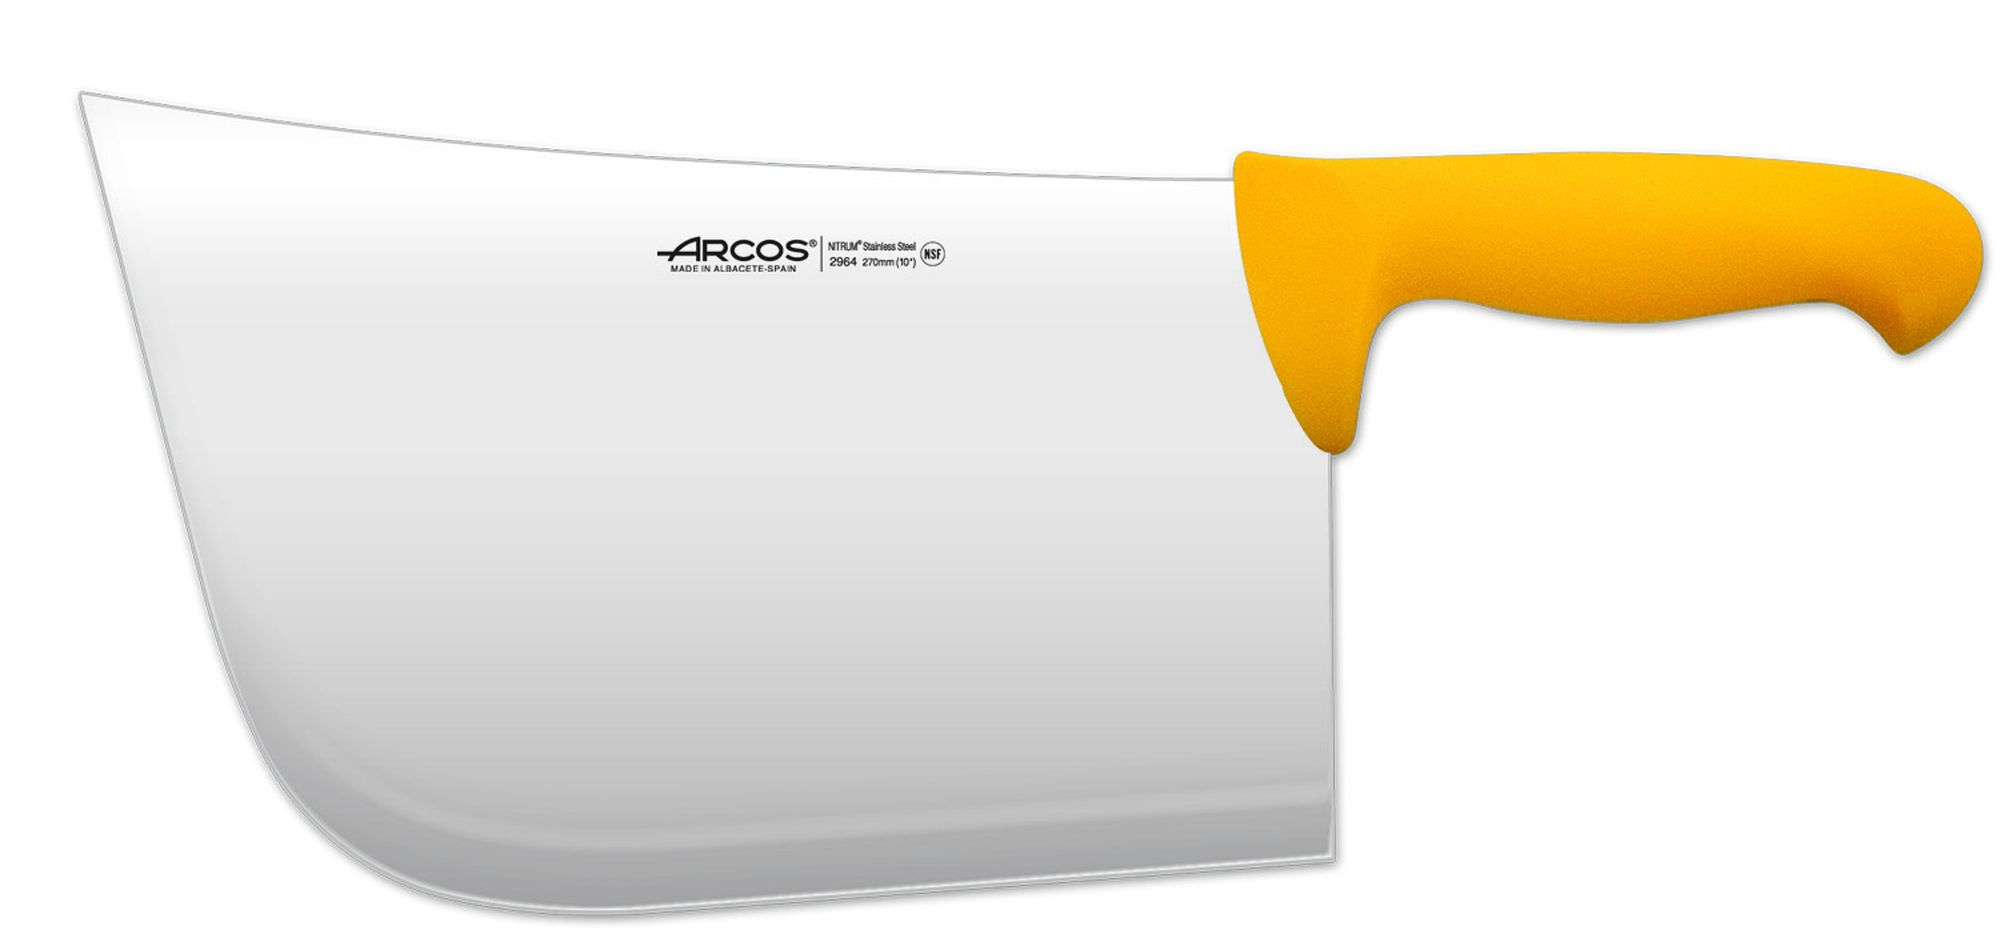 Cleaver Arcos ref.: 296400